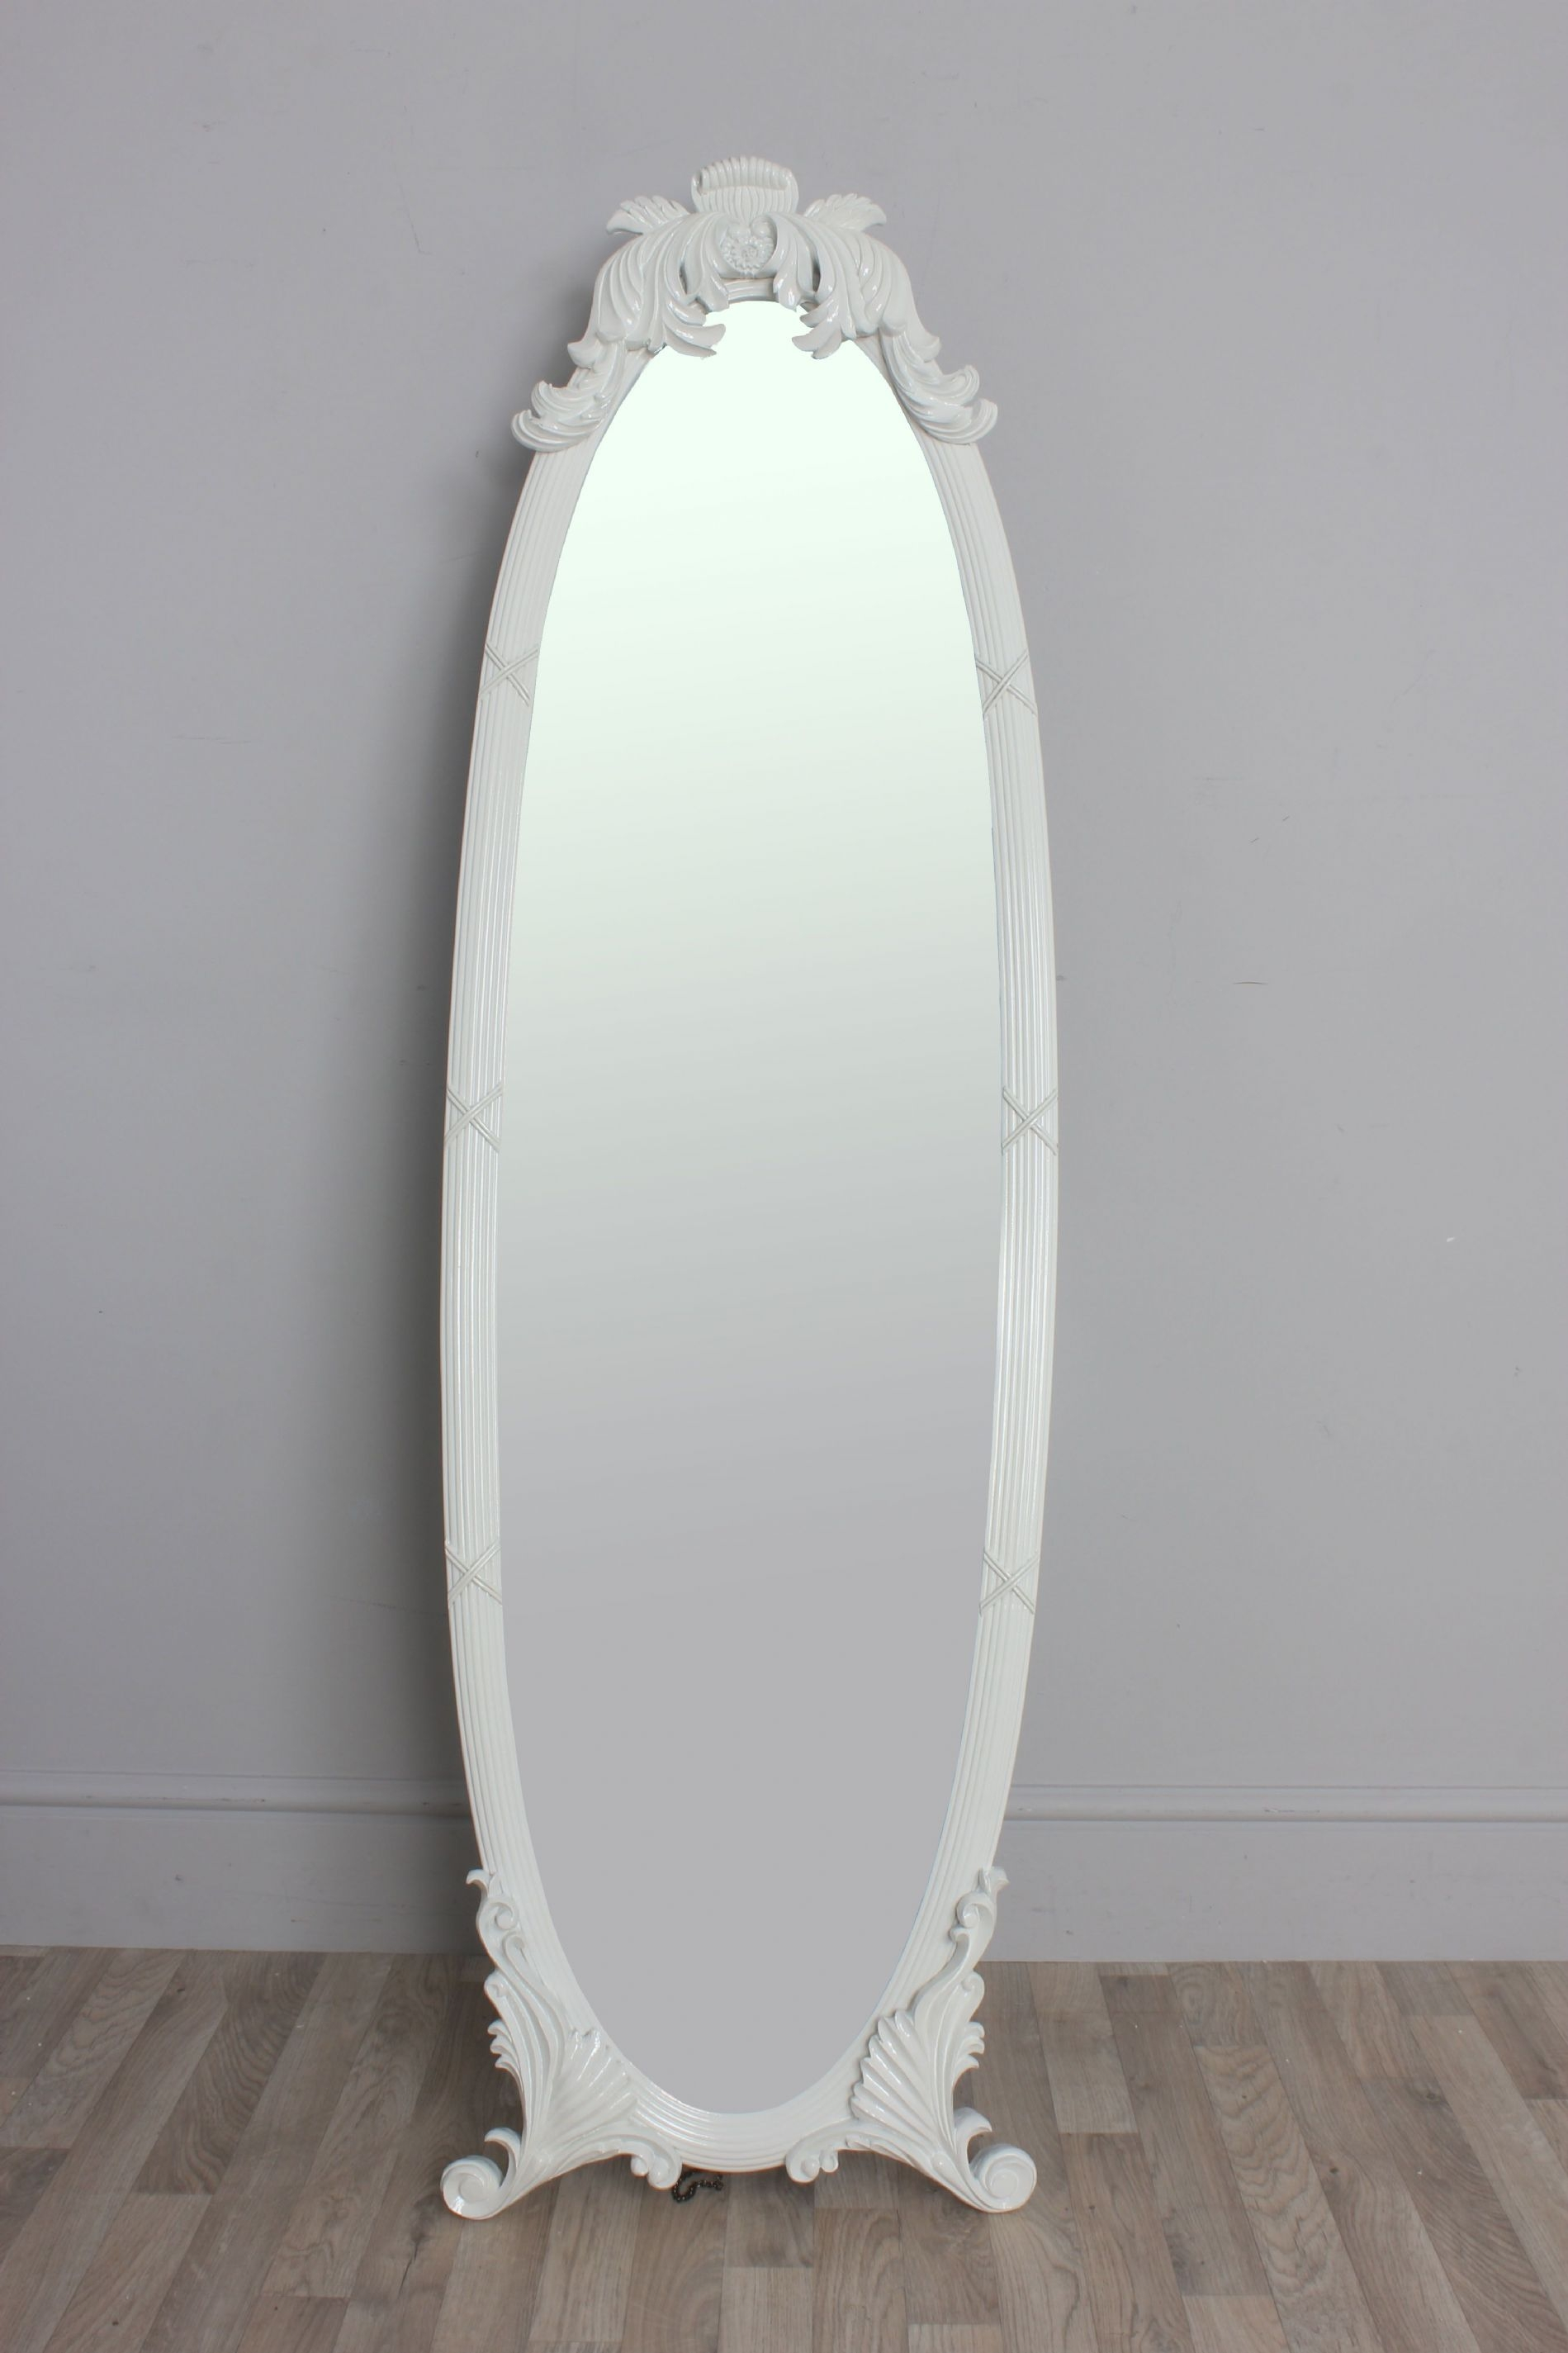 Mirror Google Search Individual Bedroom Furniture Pinterest Within Oval Freestanding Mirror (Image 10 of 15)